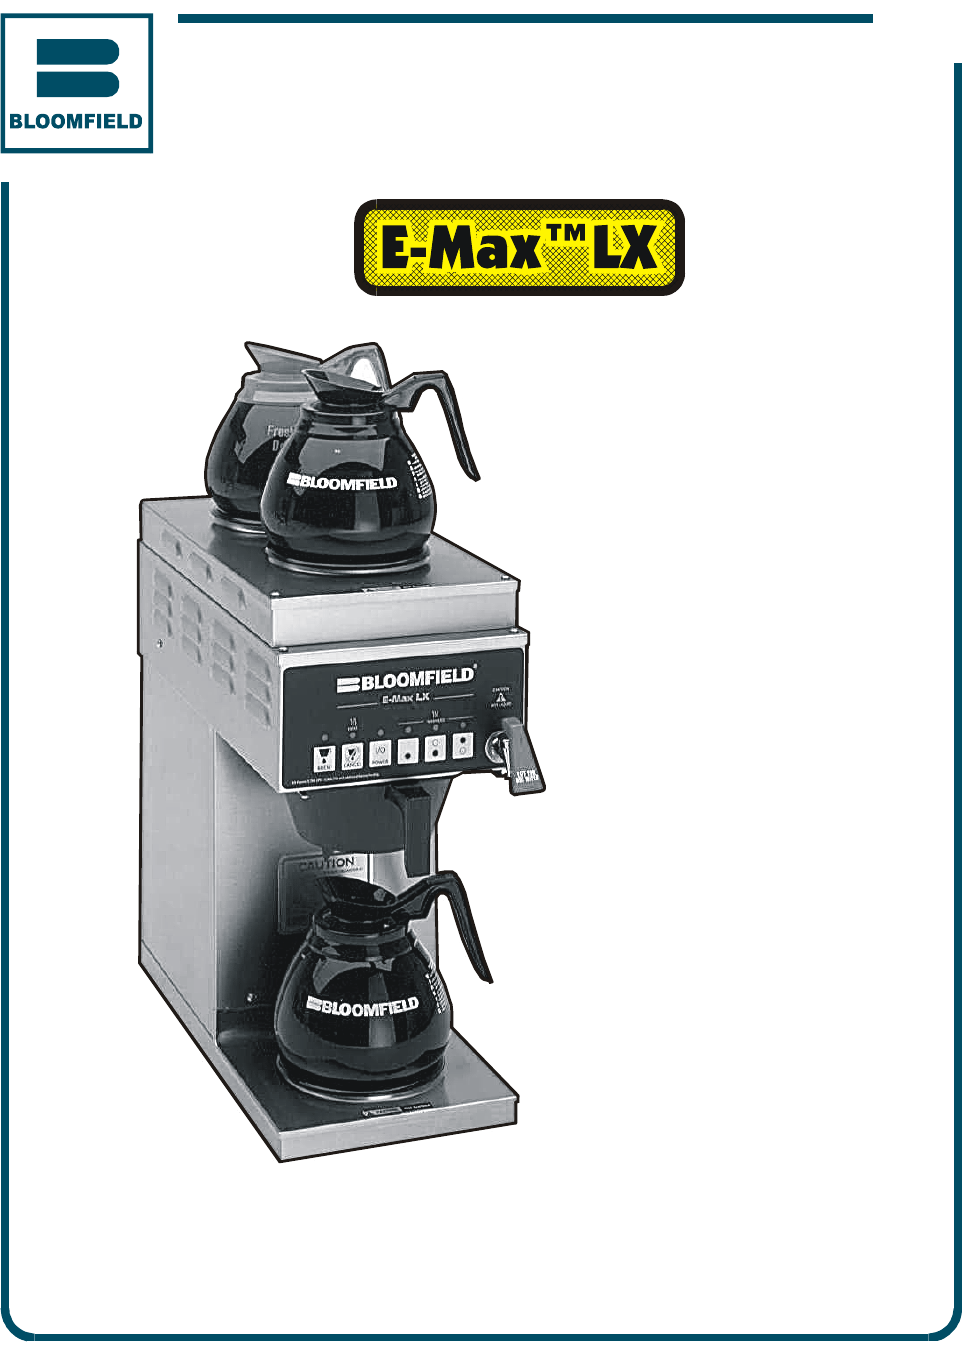 Bloomfield Coffee Maker Parts Manual : Bloomfield Coffeemaker 2274EX User Guide ManualsOnline.com